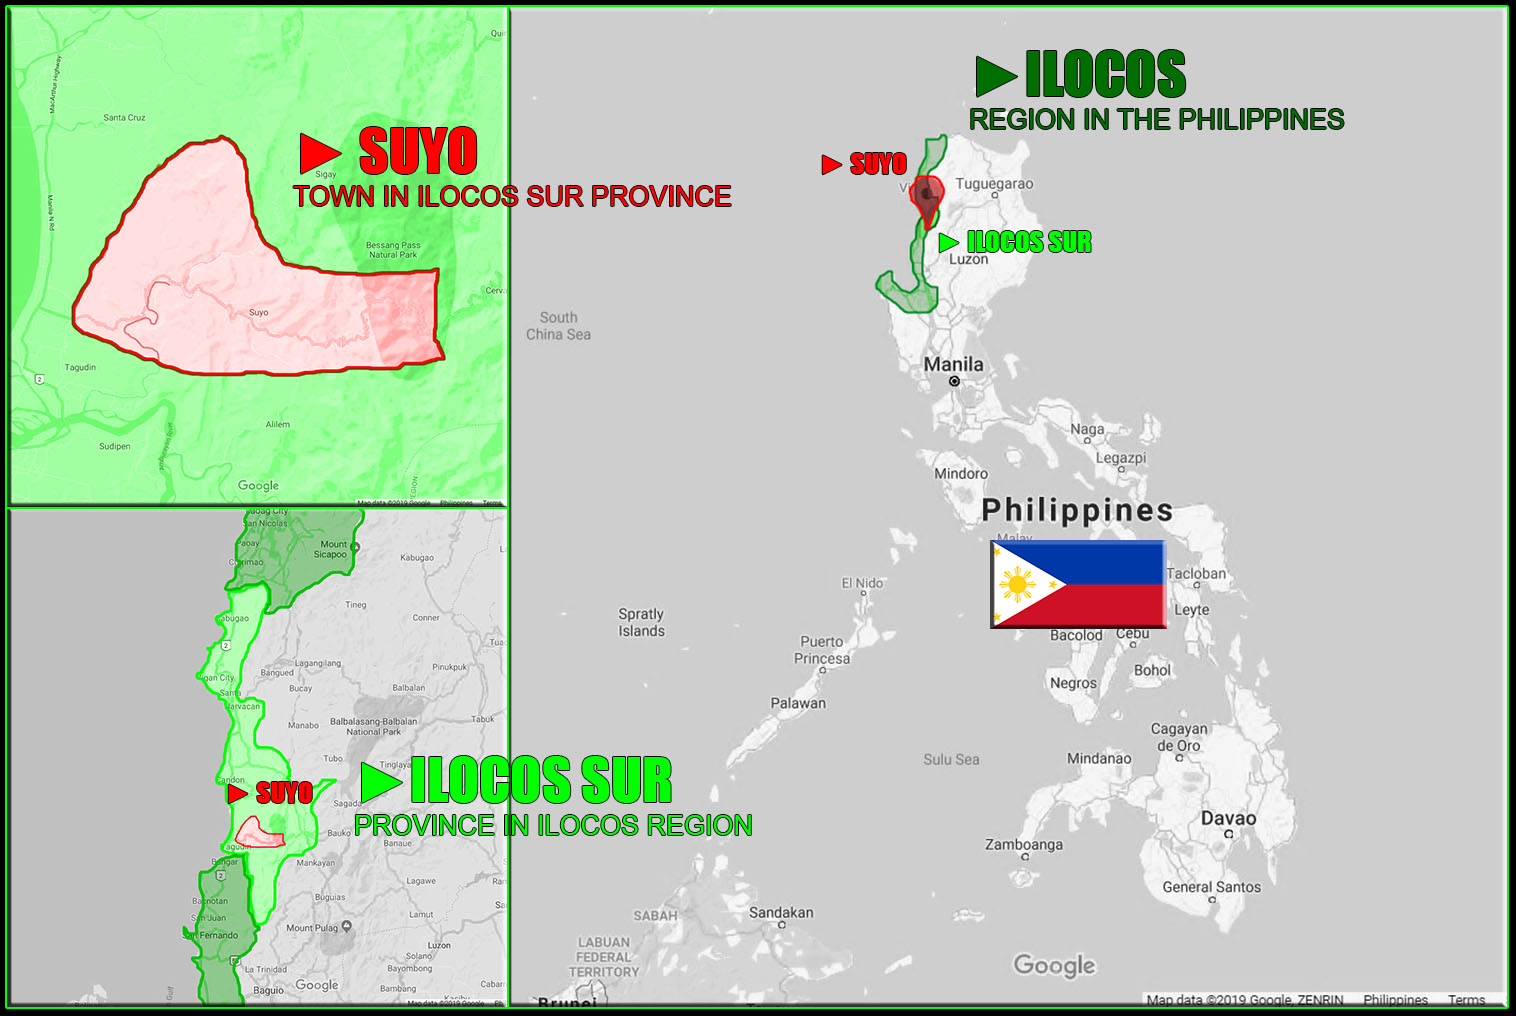 MAP OF SUYO, ILOCOS SUR